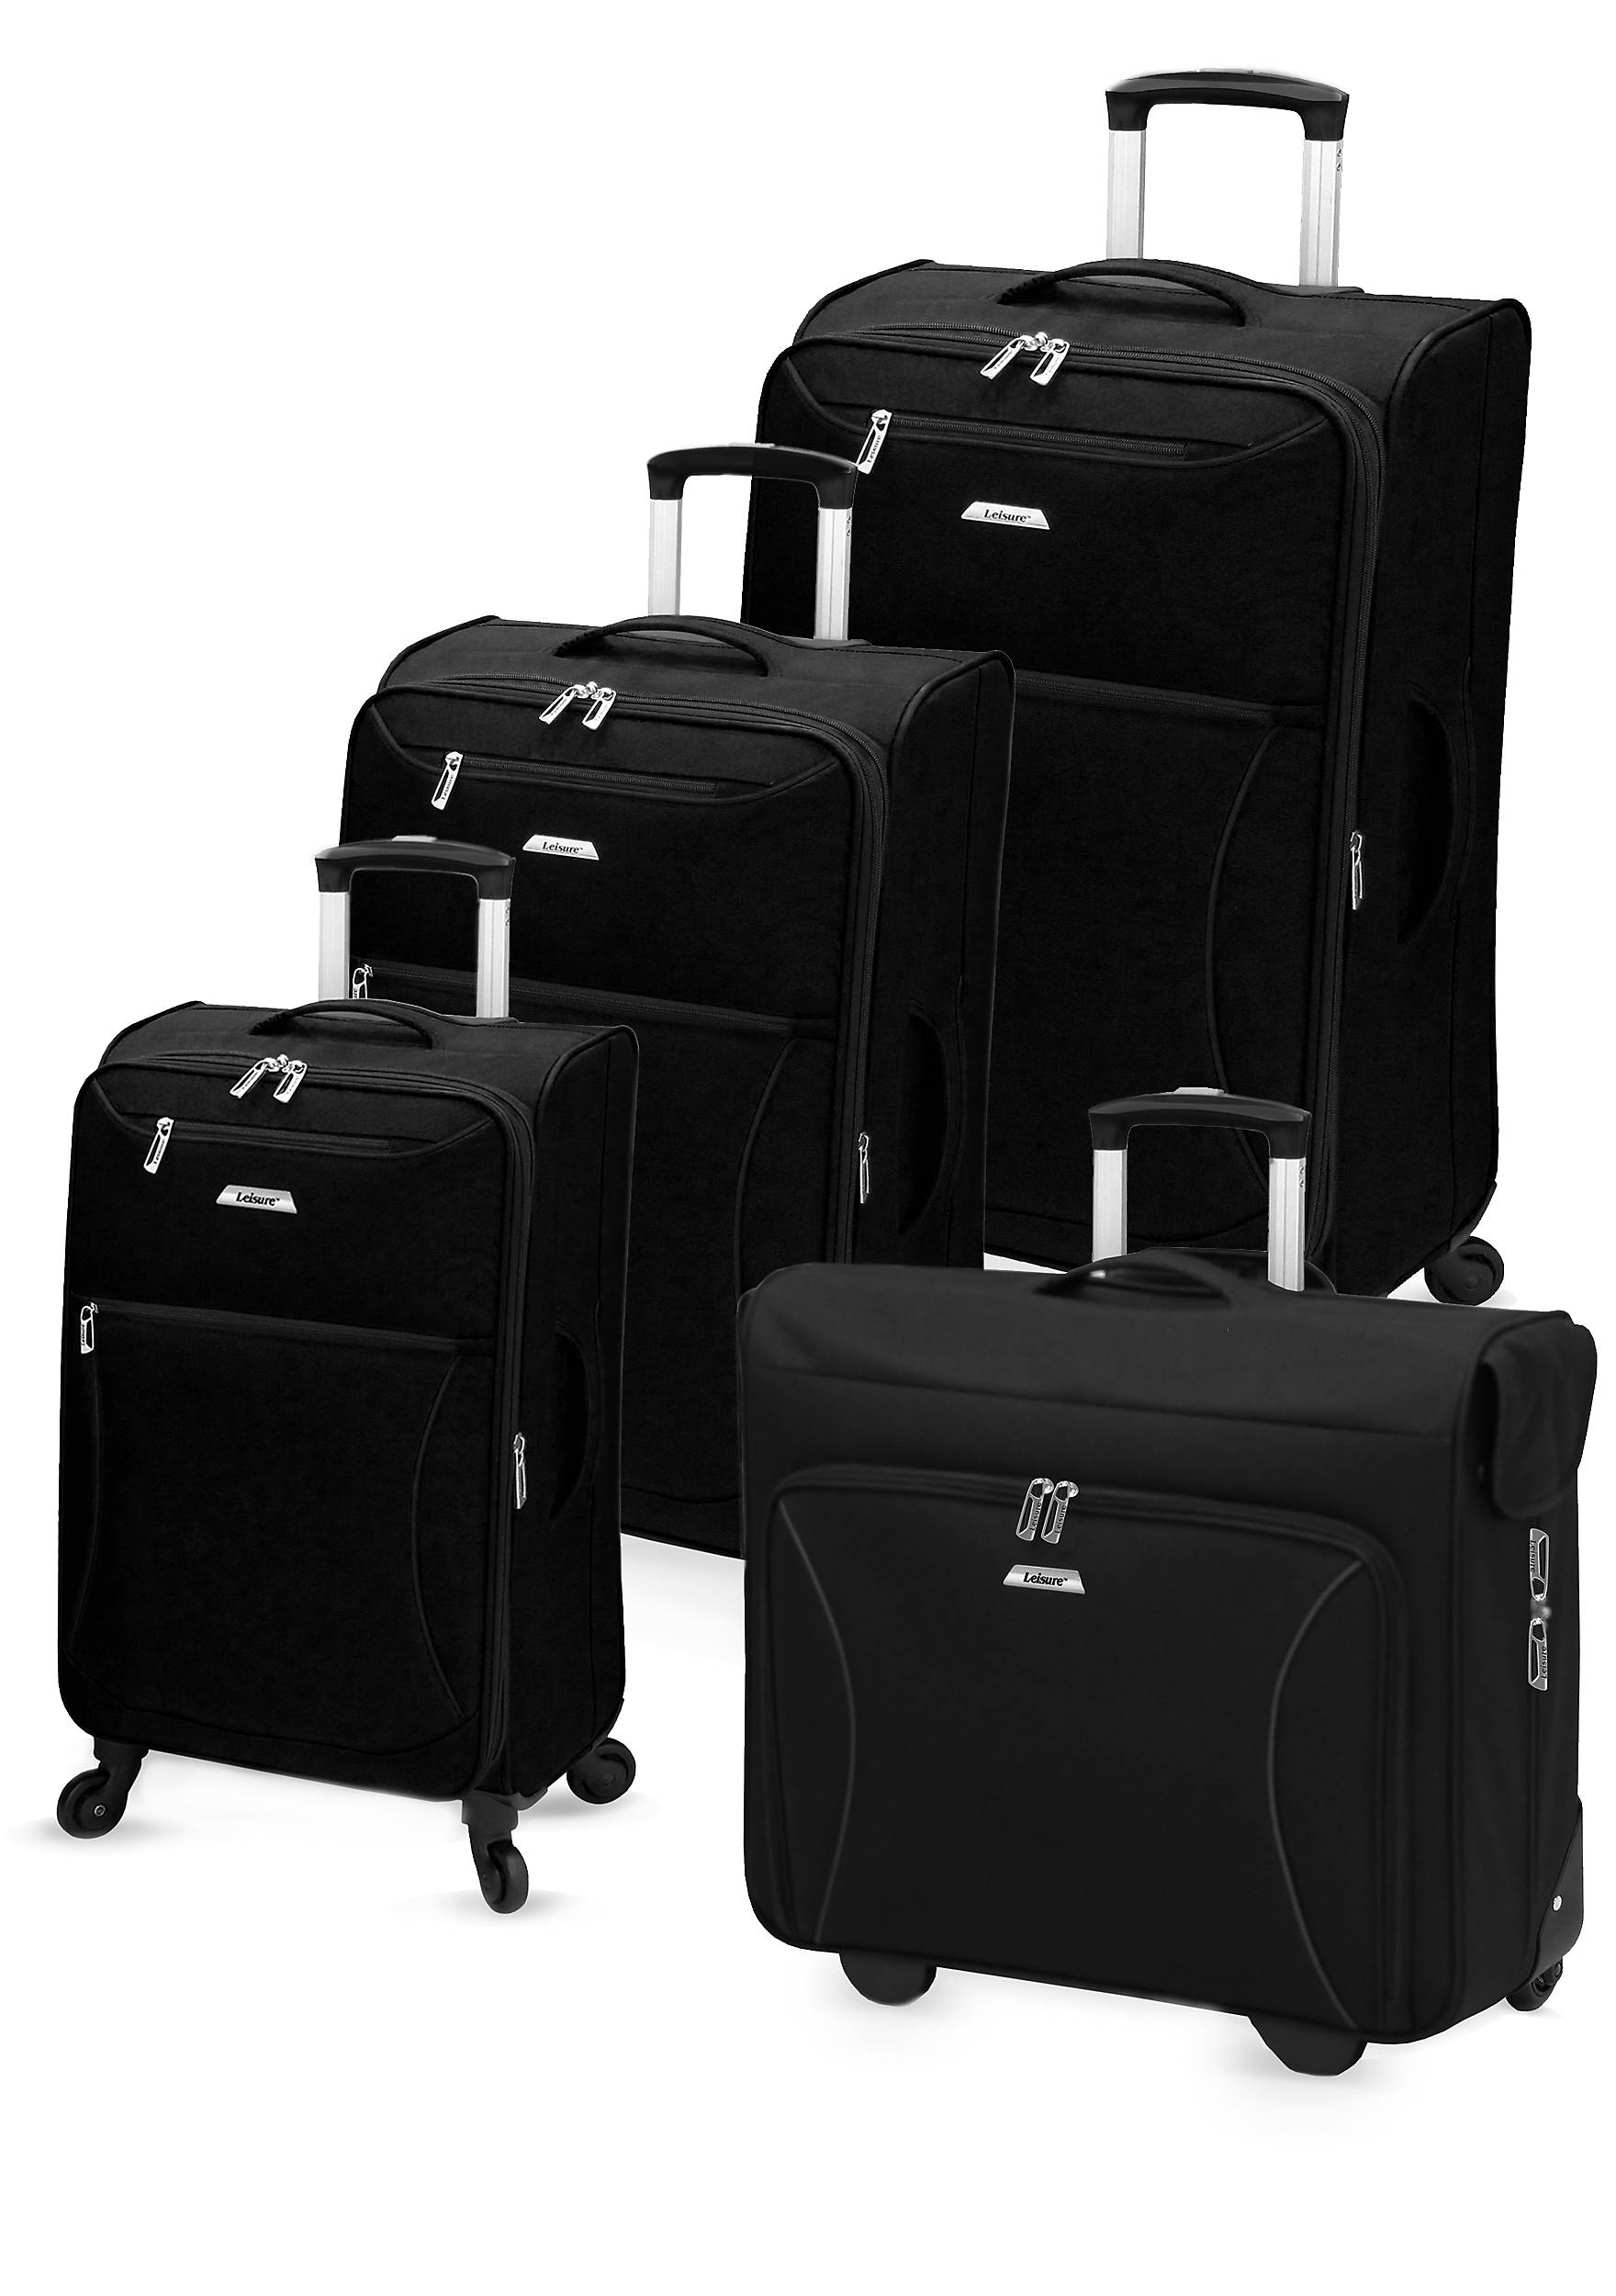 Leisure Vector FeatherLight Spinner Luggage Collection - Black | belk